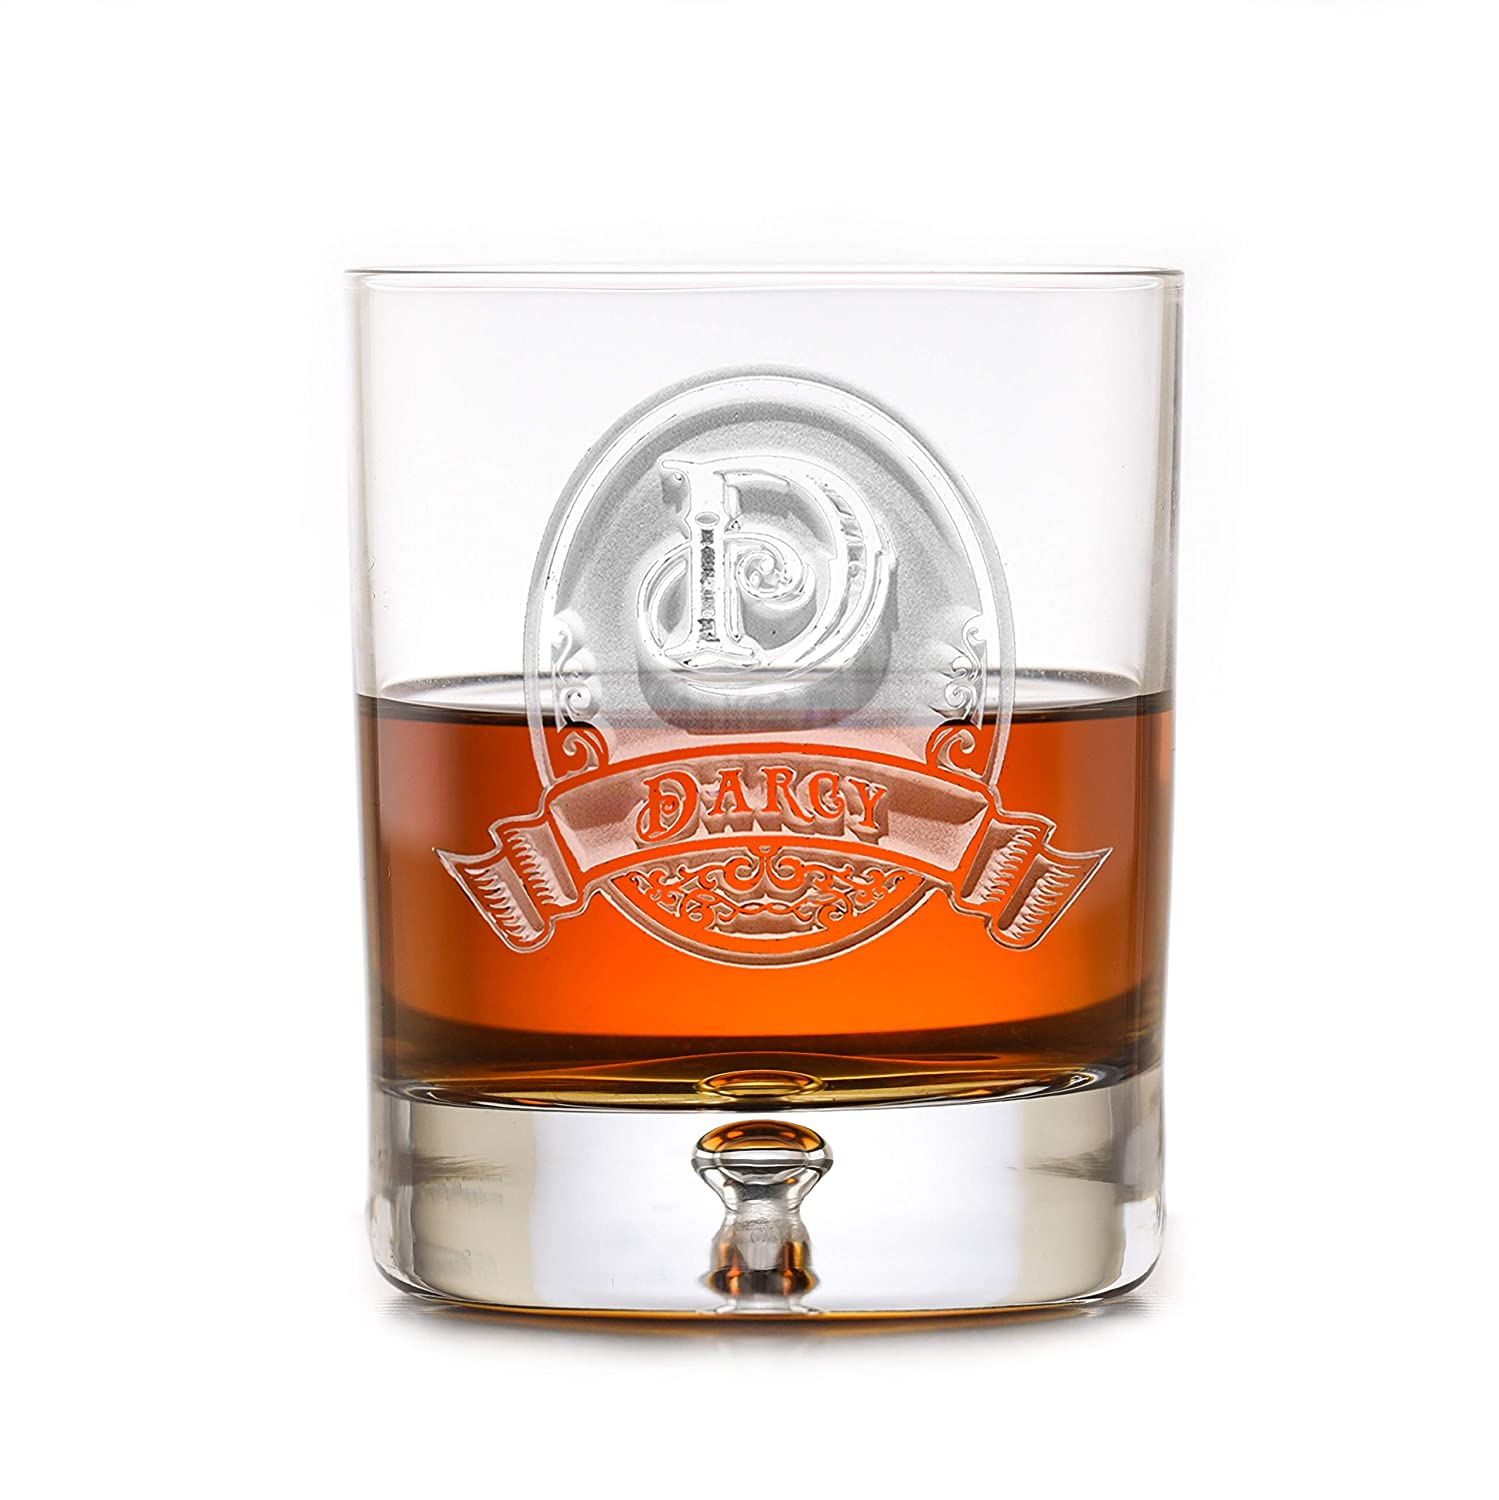 Scotch Lead Free Crystal Whiskey M8 Bourbon Rocks Glasses Engraved SET OF 4